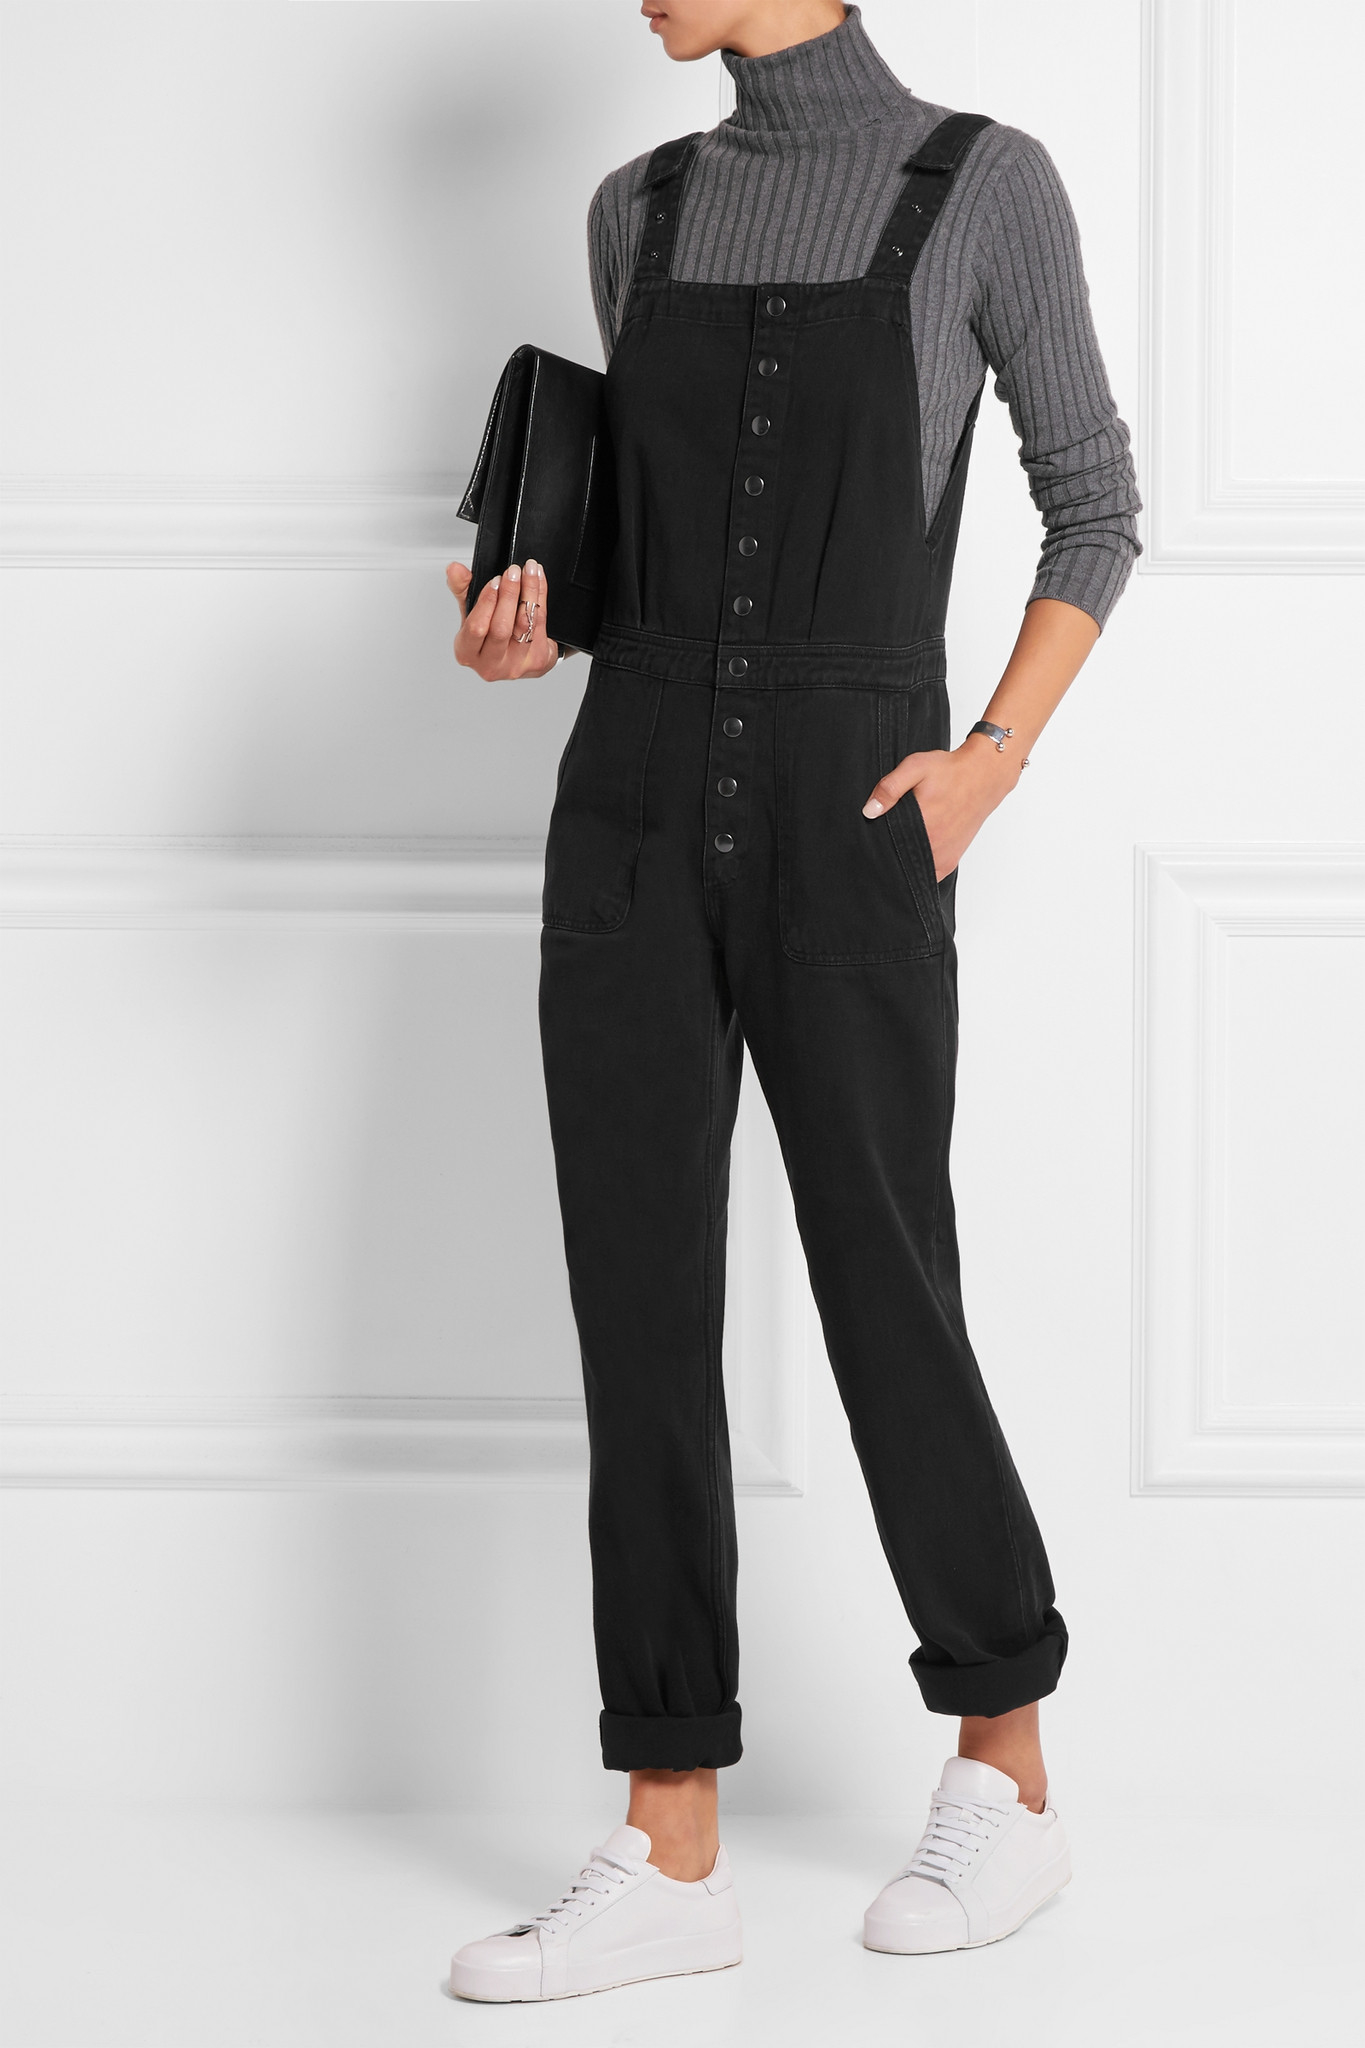 ba7075935f65 Lyst - M.i.h Jeans Clint Denim Overalls in Black